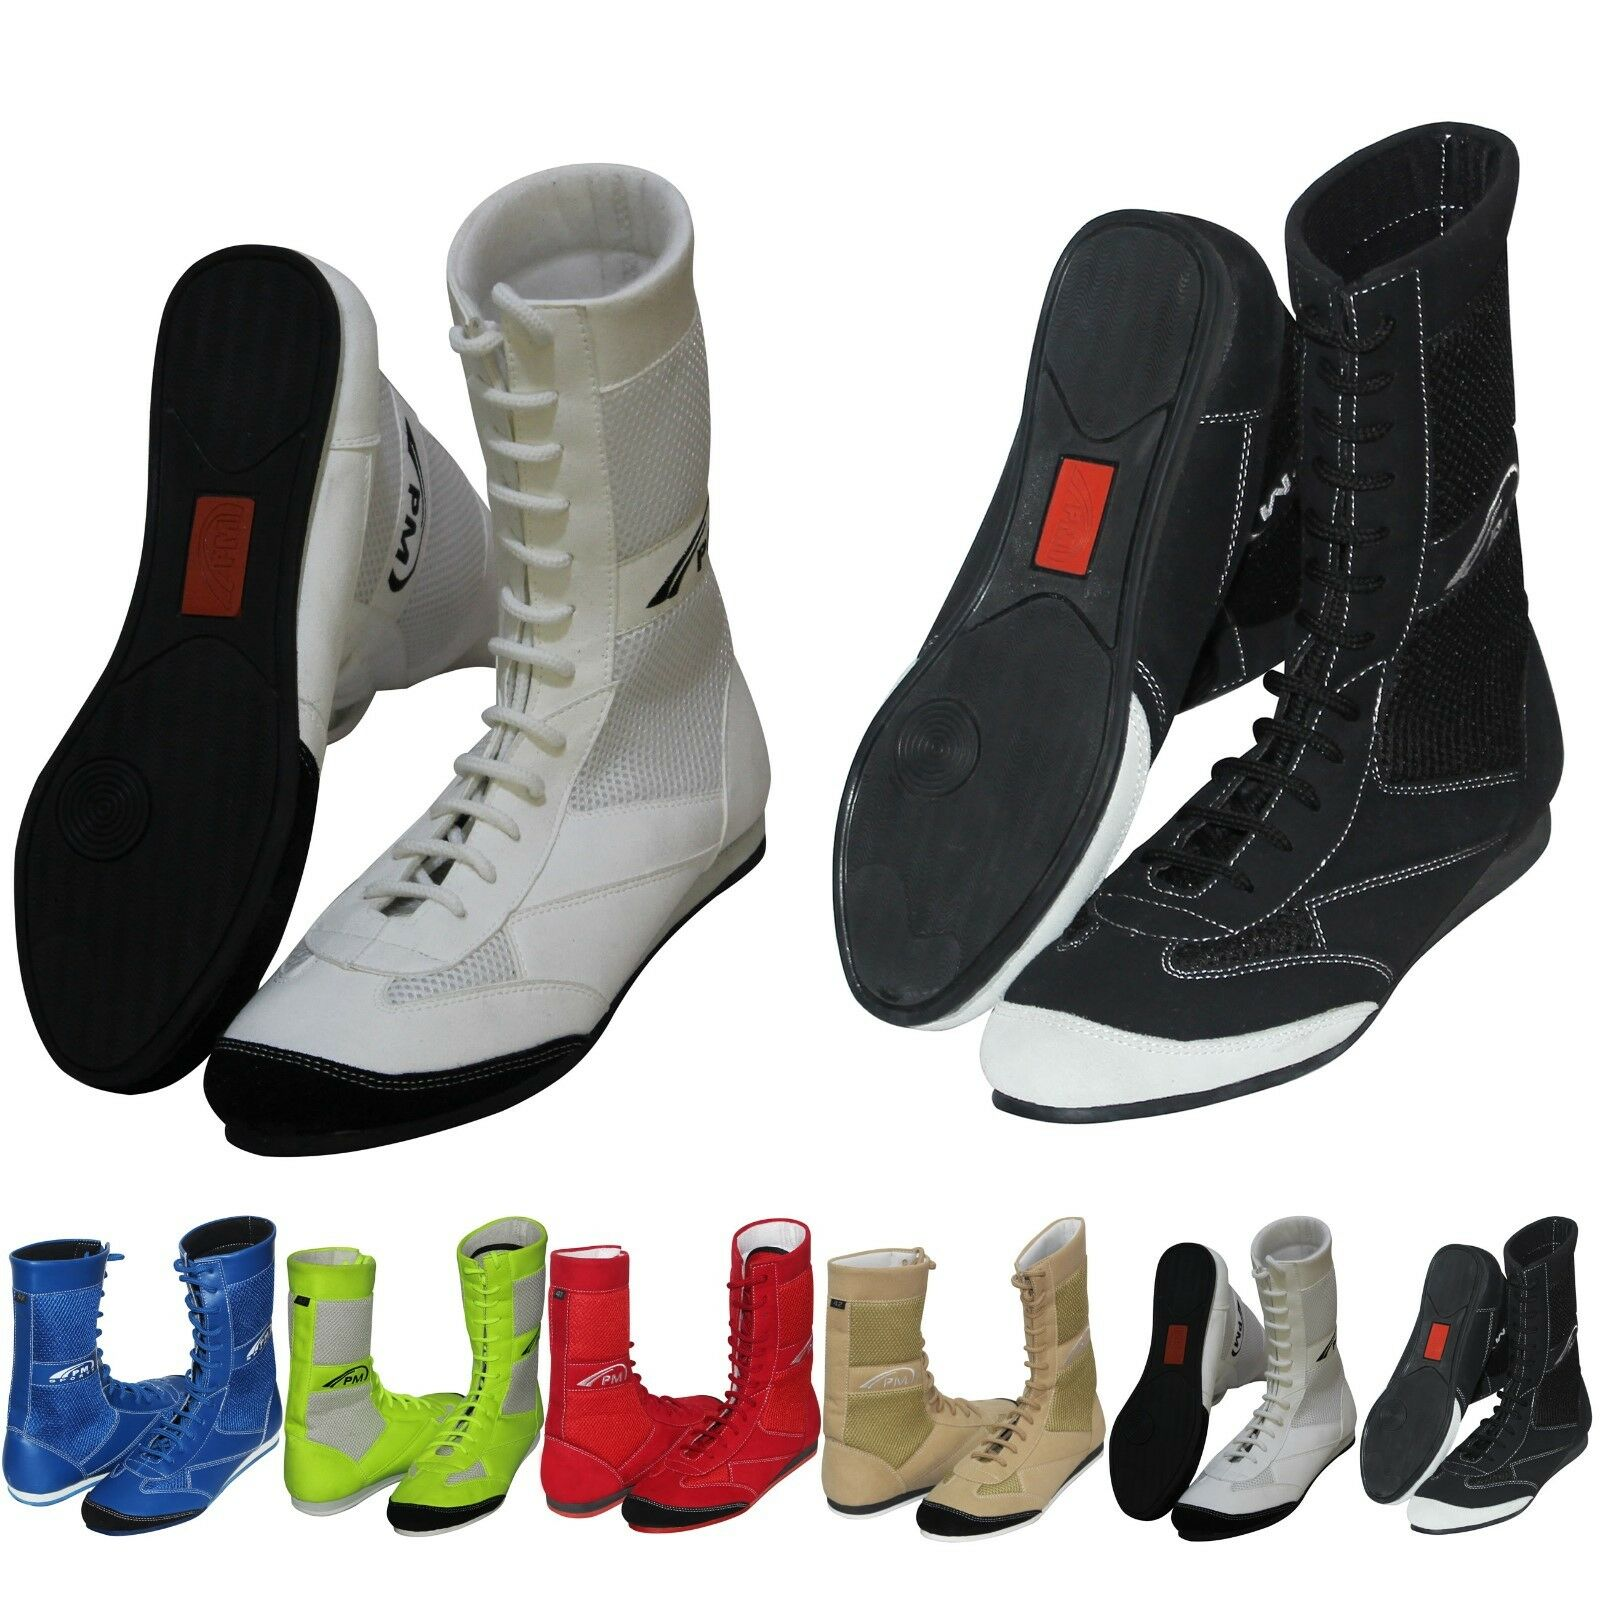 Boxing Boots Wrestling shoes 100% Pure Leather & Mesh Light Weight Adult Juniors